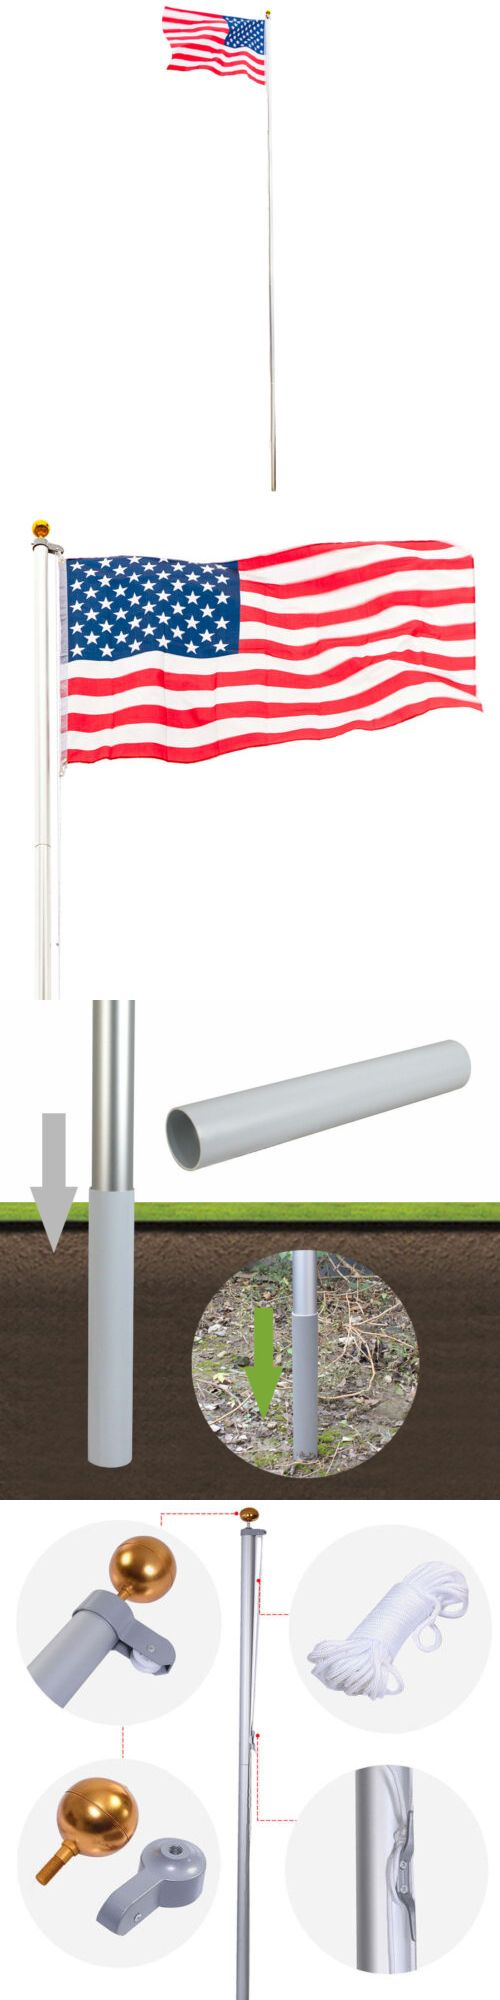 Flag Poles And Parts 43536 Flagpole Kit Aluminum Halyard 25ft Sectional 1pc Us American Flag Durable Garden Buy It Now On American Flag Flag Pole Sectional